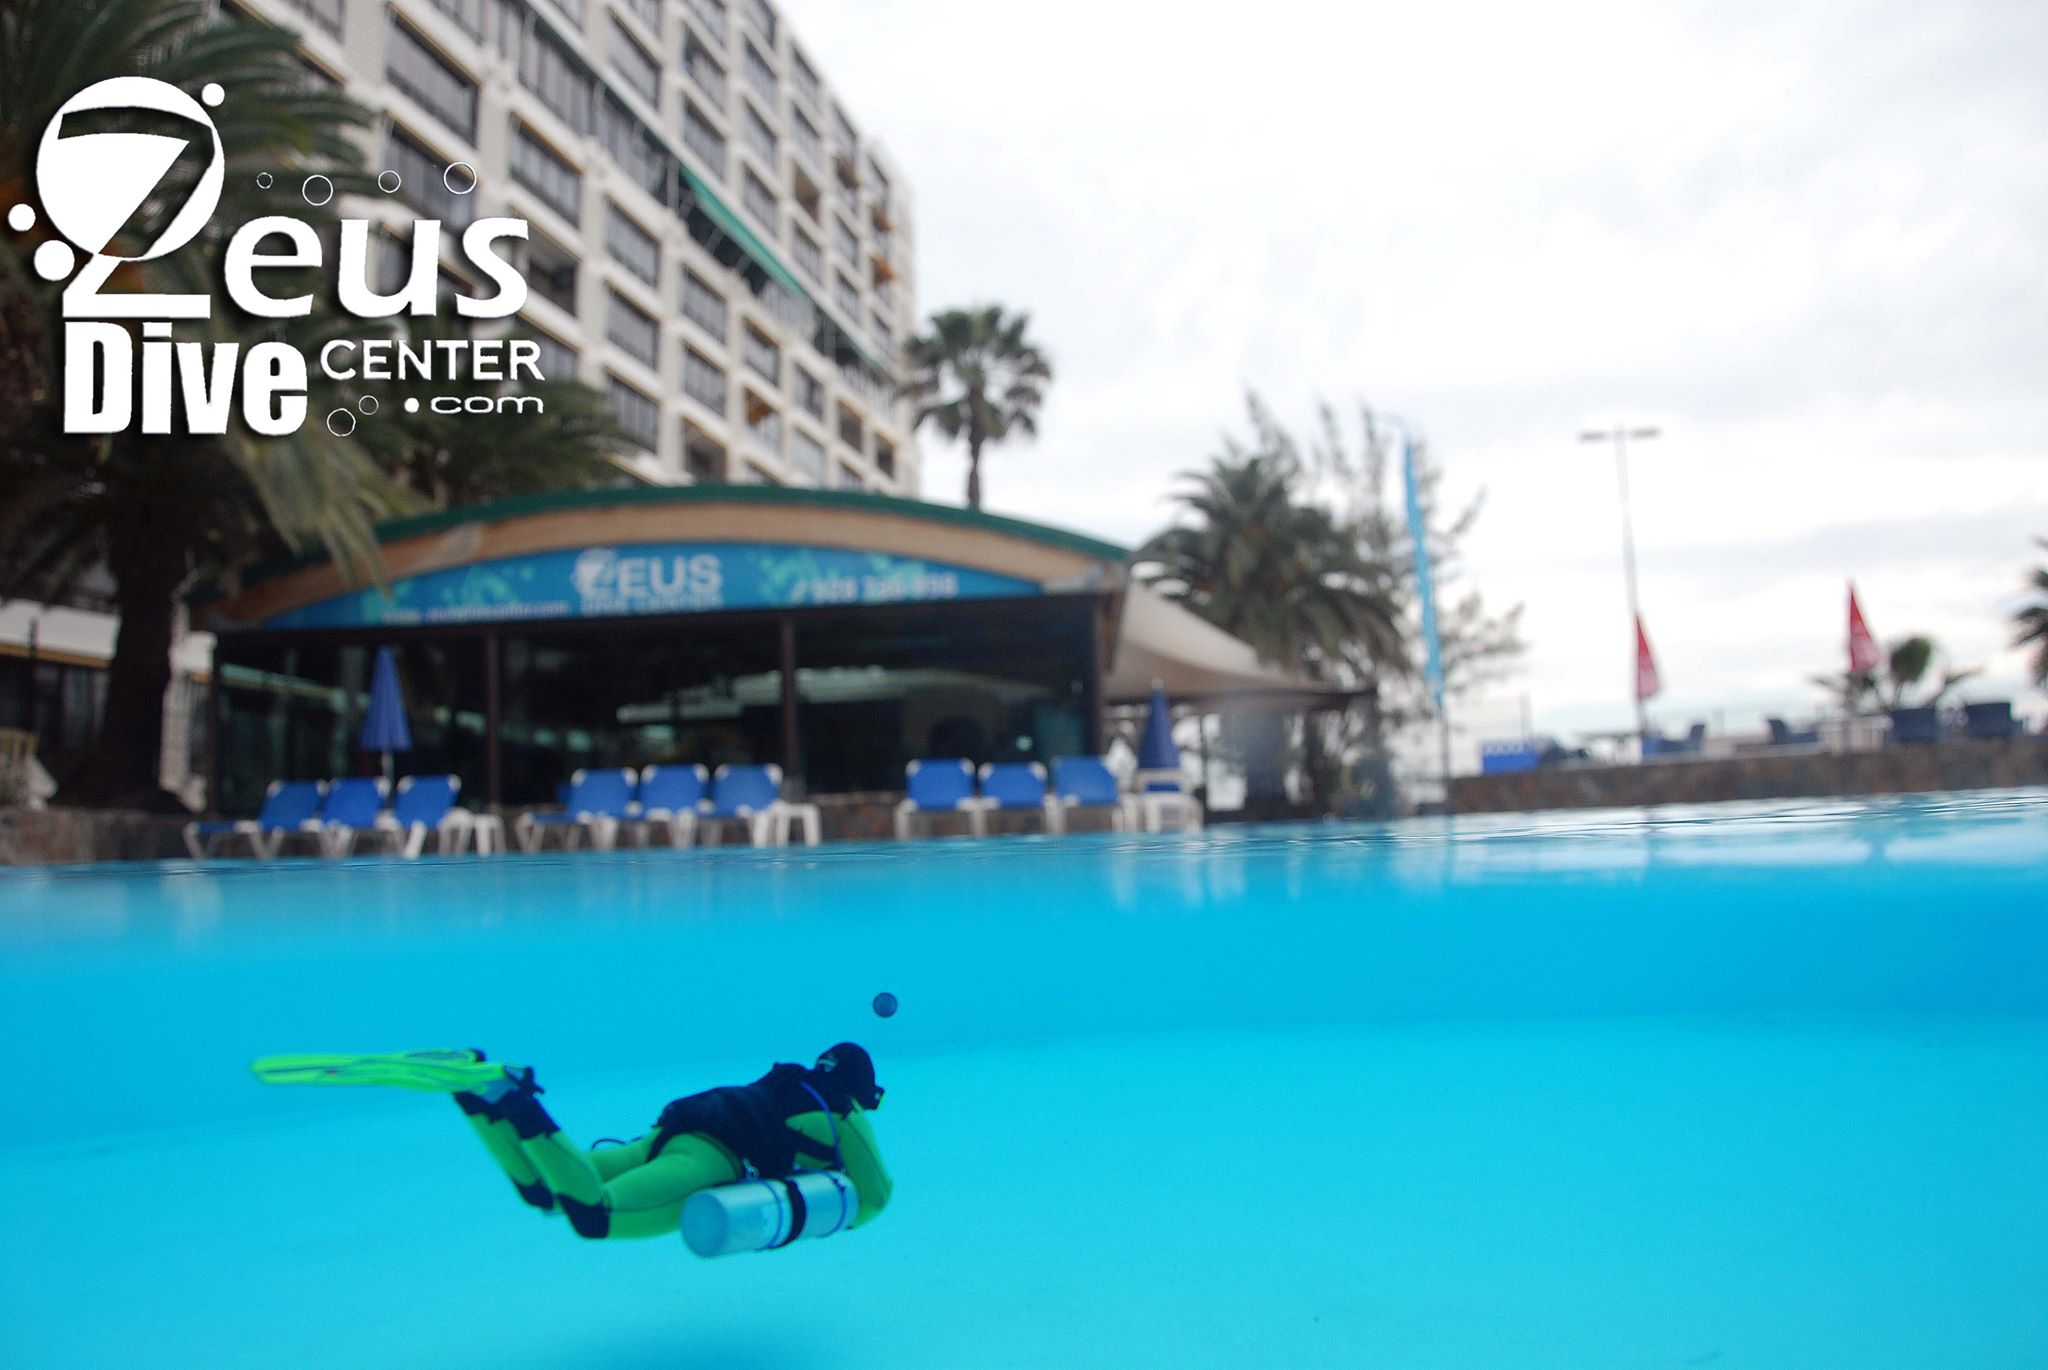 Zeus dive center buceo ib rico for Dive centres